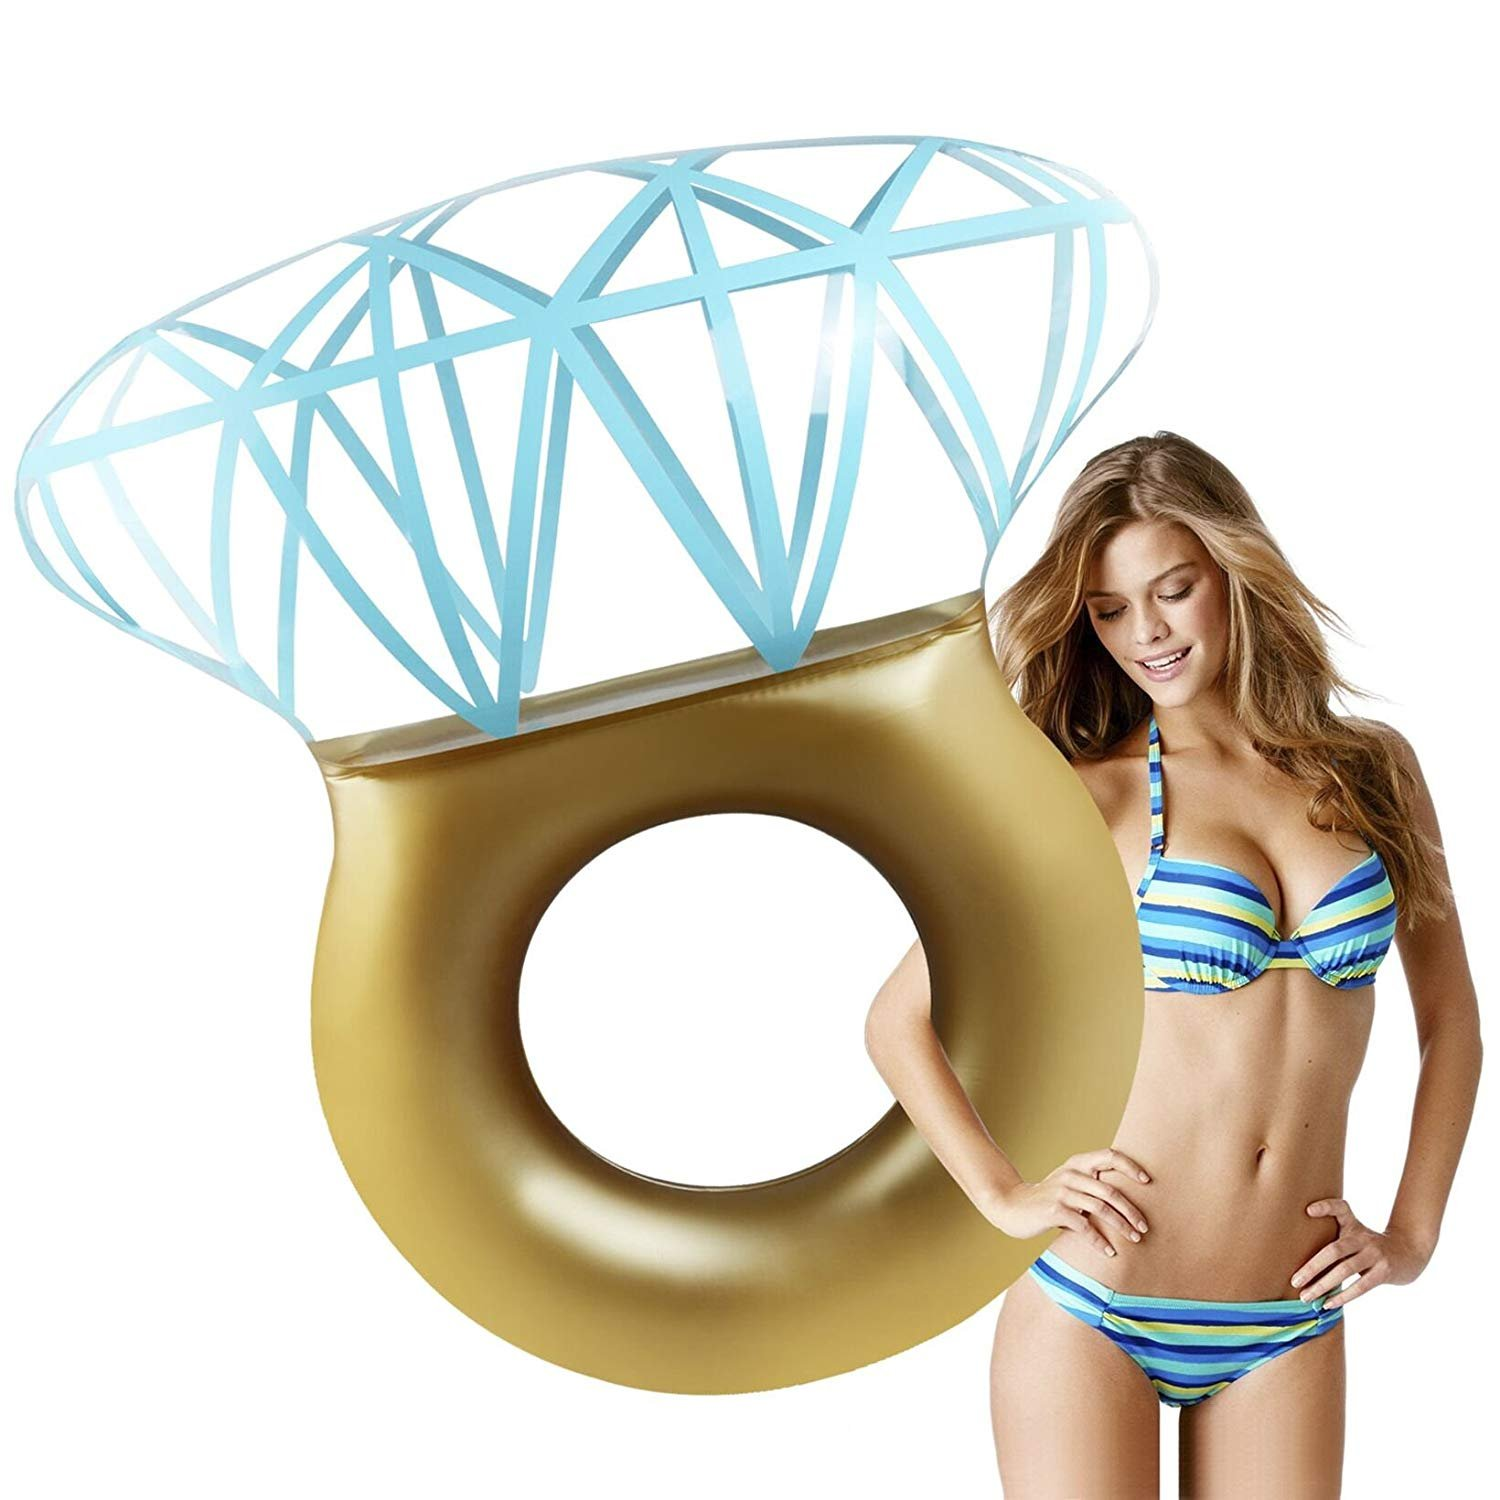 Zakara Diamond Ring Swimming Pool Inflatable Float for Bachelorette Parties Summer 2018